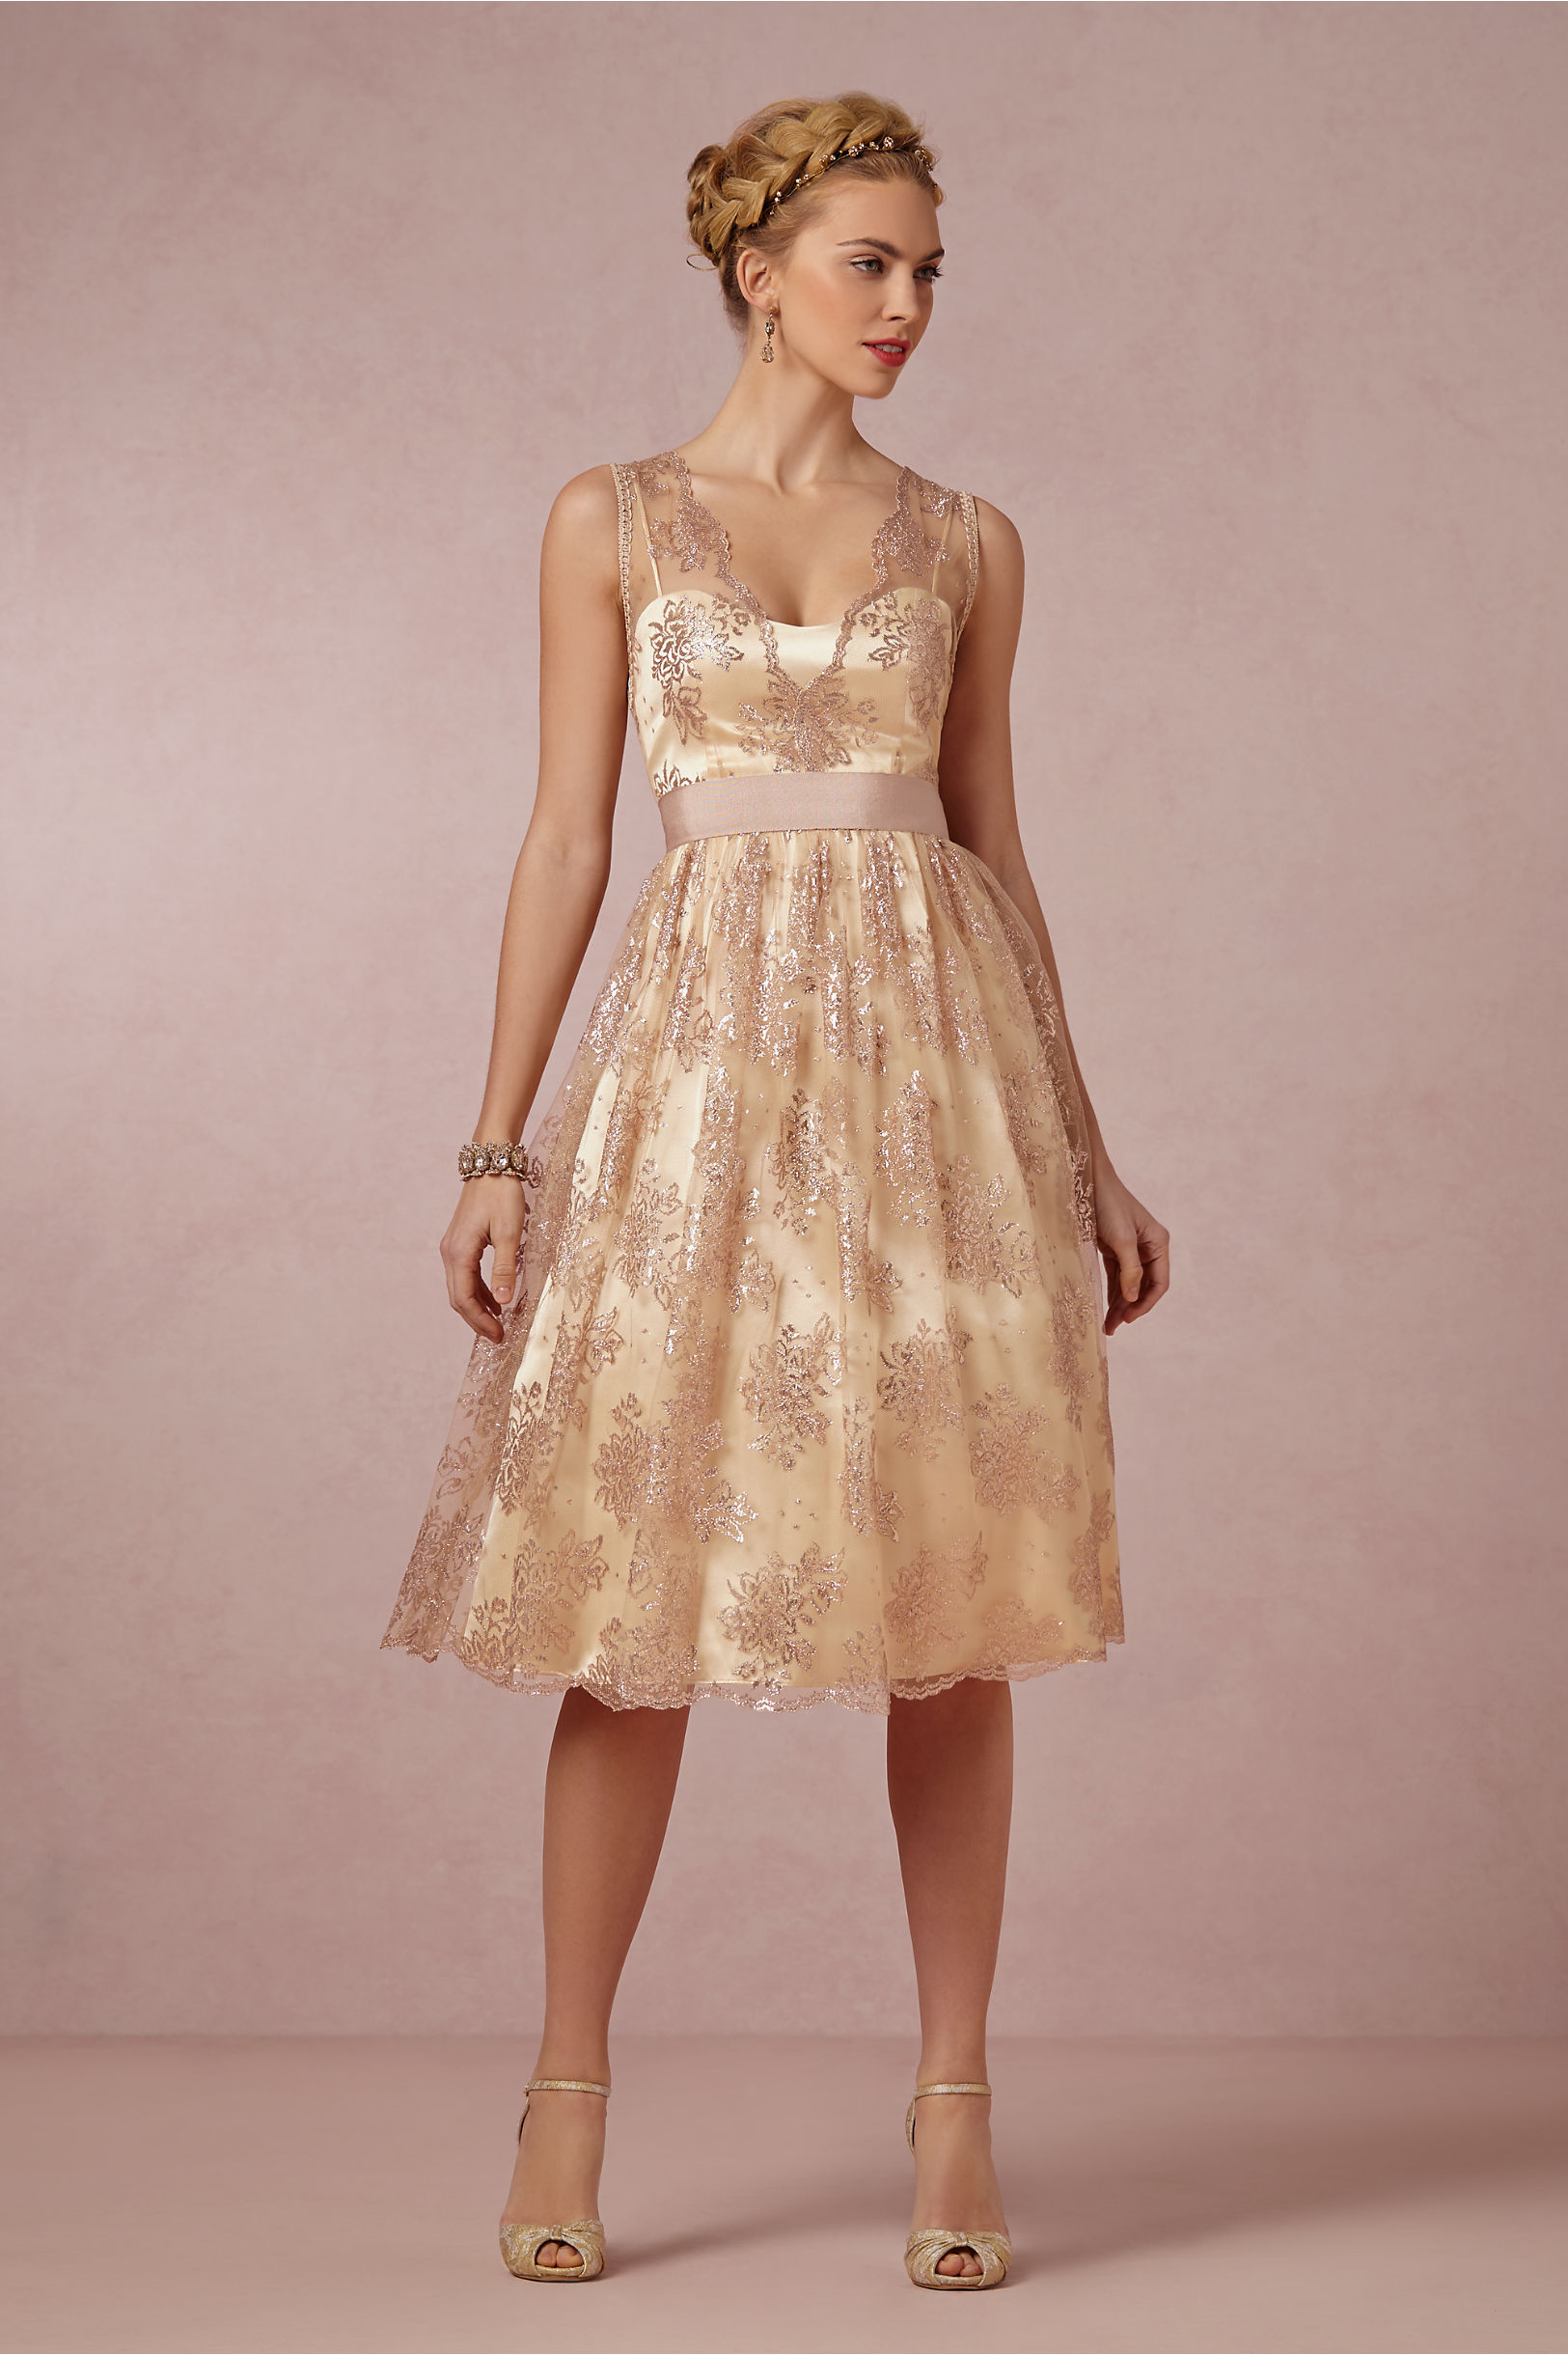 Martine dress in bride bhldn james coviello rosegold martine dress bhldn ombrellifo Images